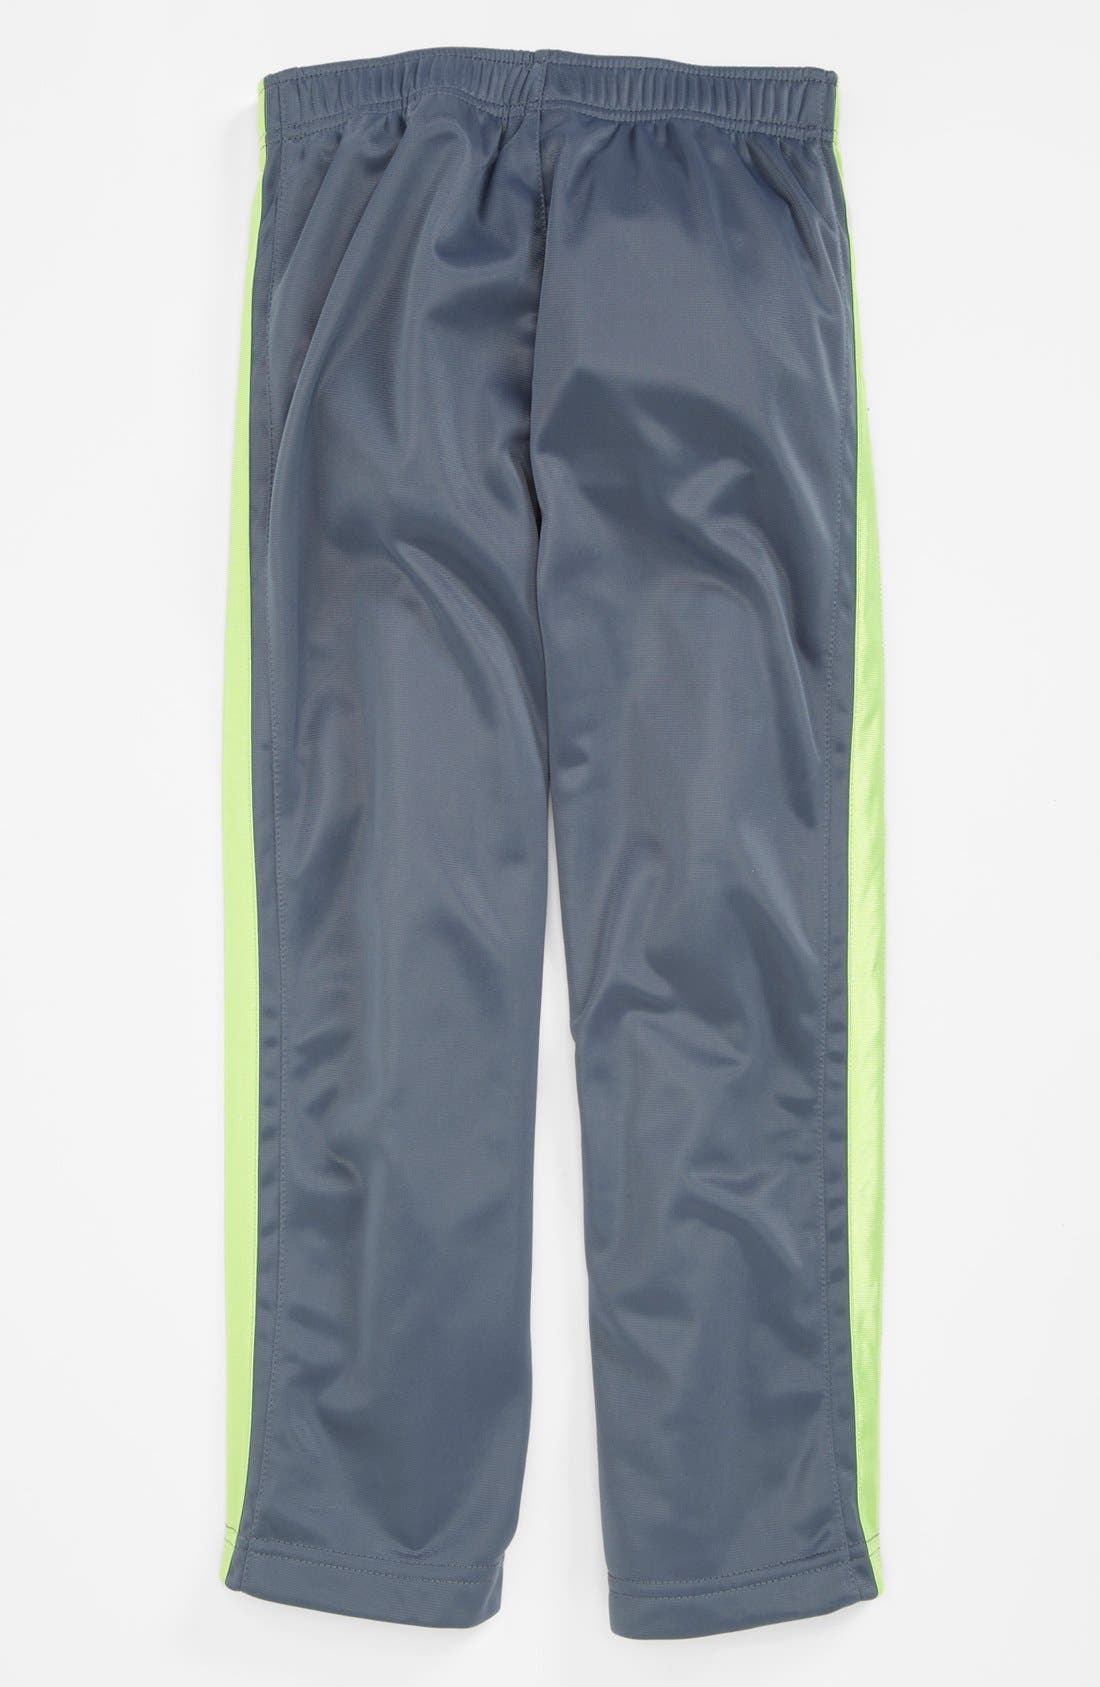 Alternate Image 1 Selected - Nike 'OT' Pants (Little Boys)